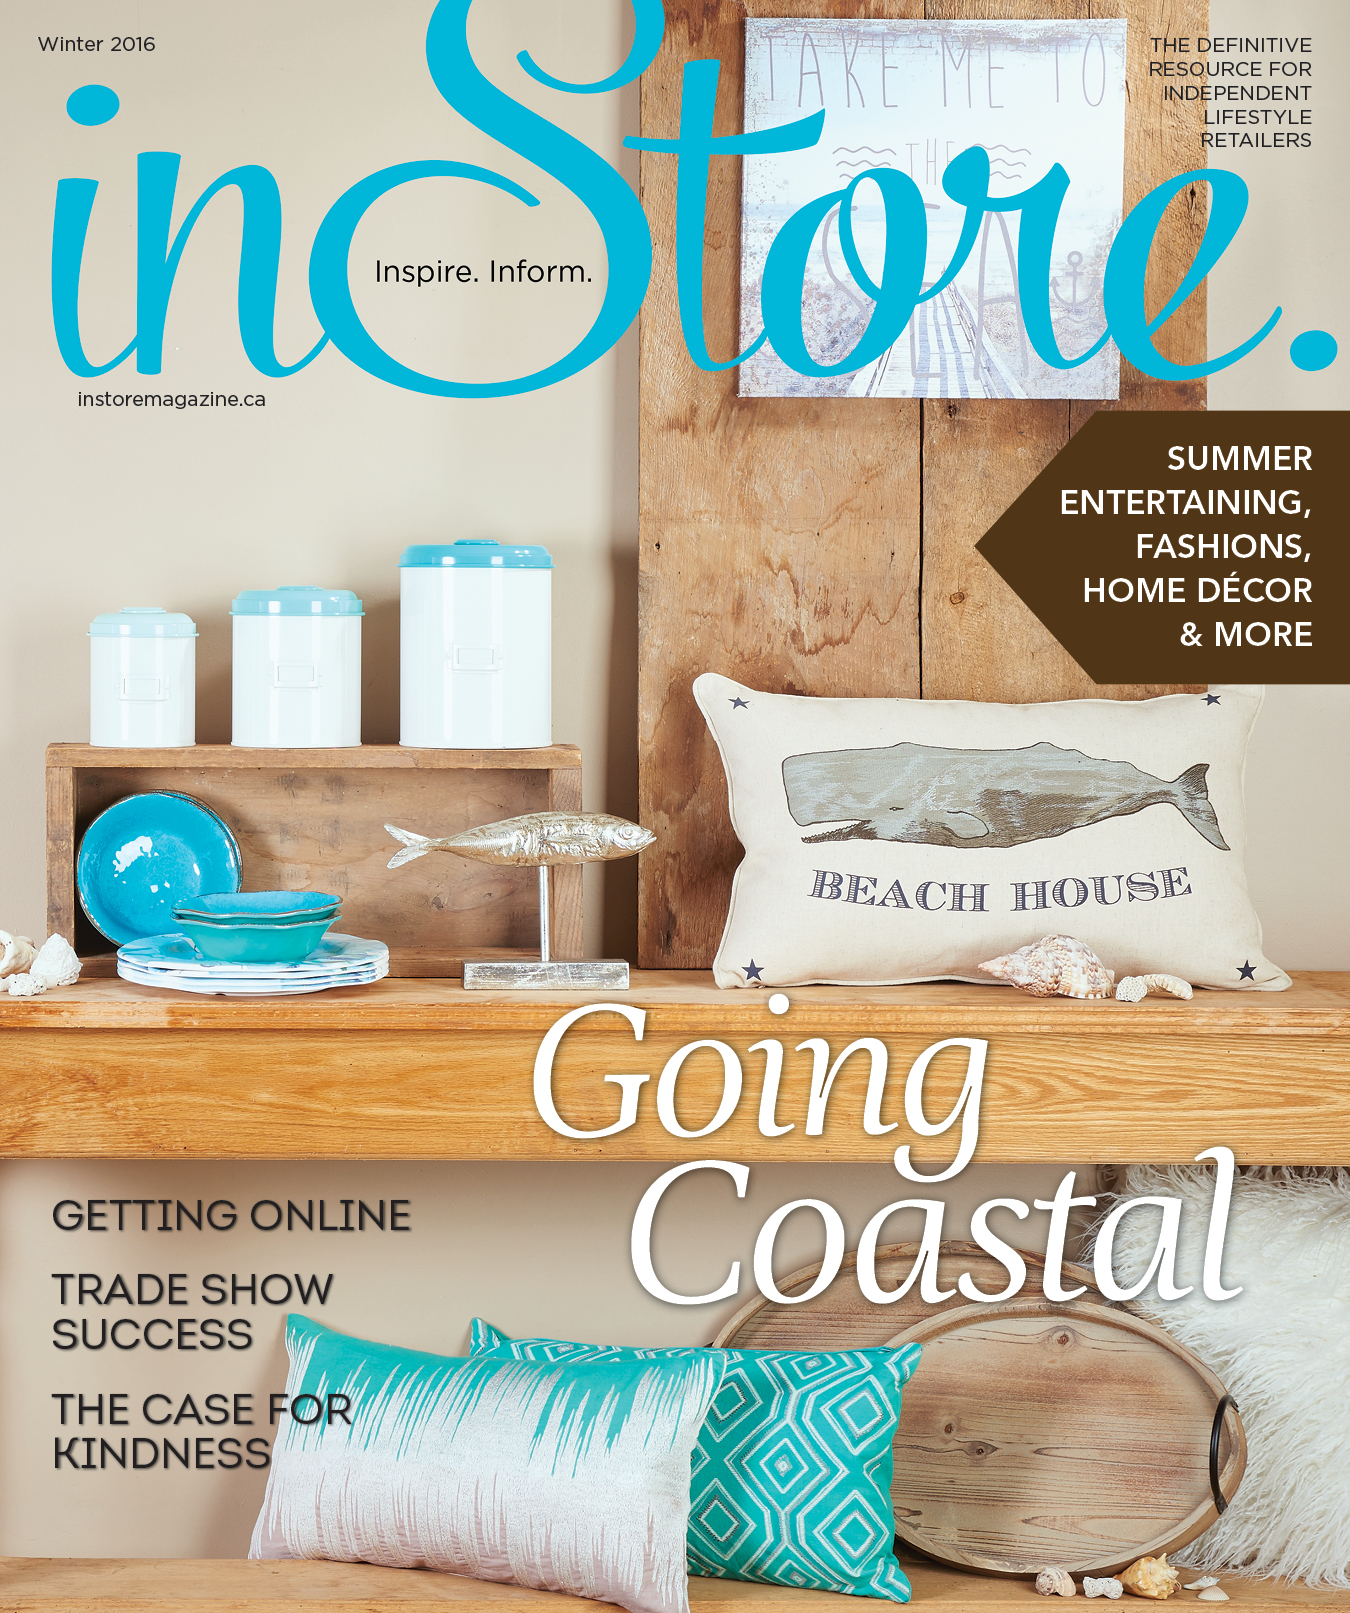 InStore Magazine Winter 2016 Issue